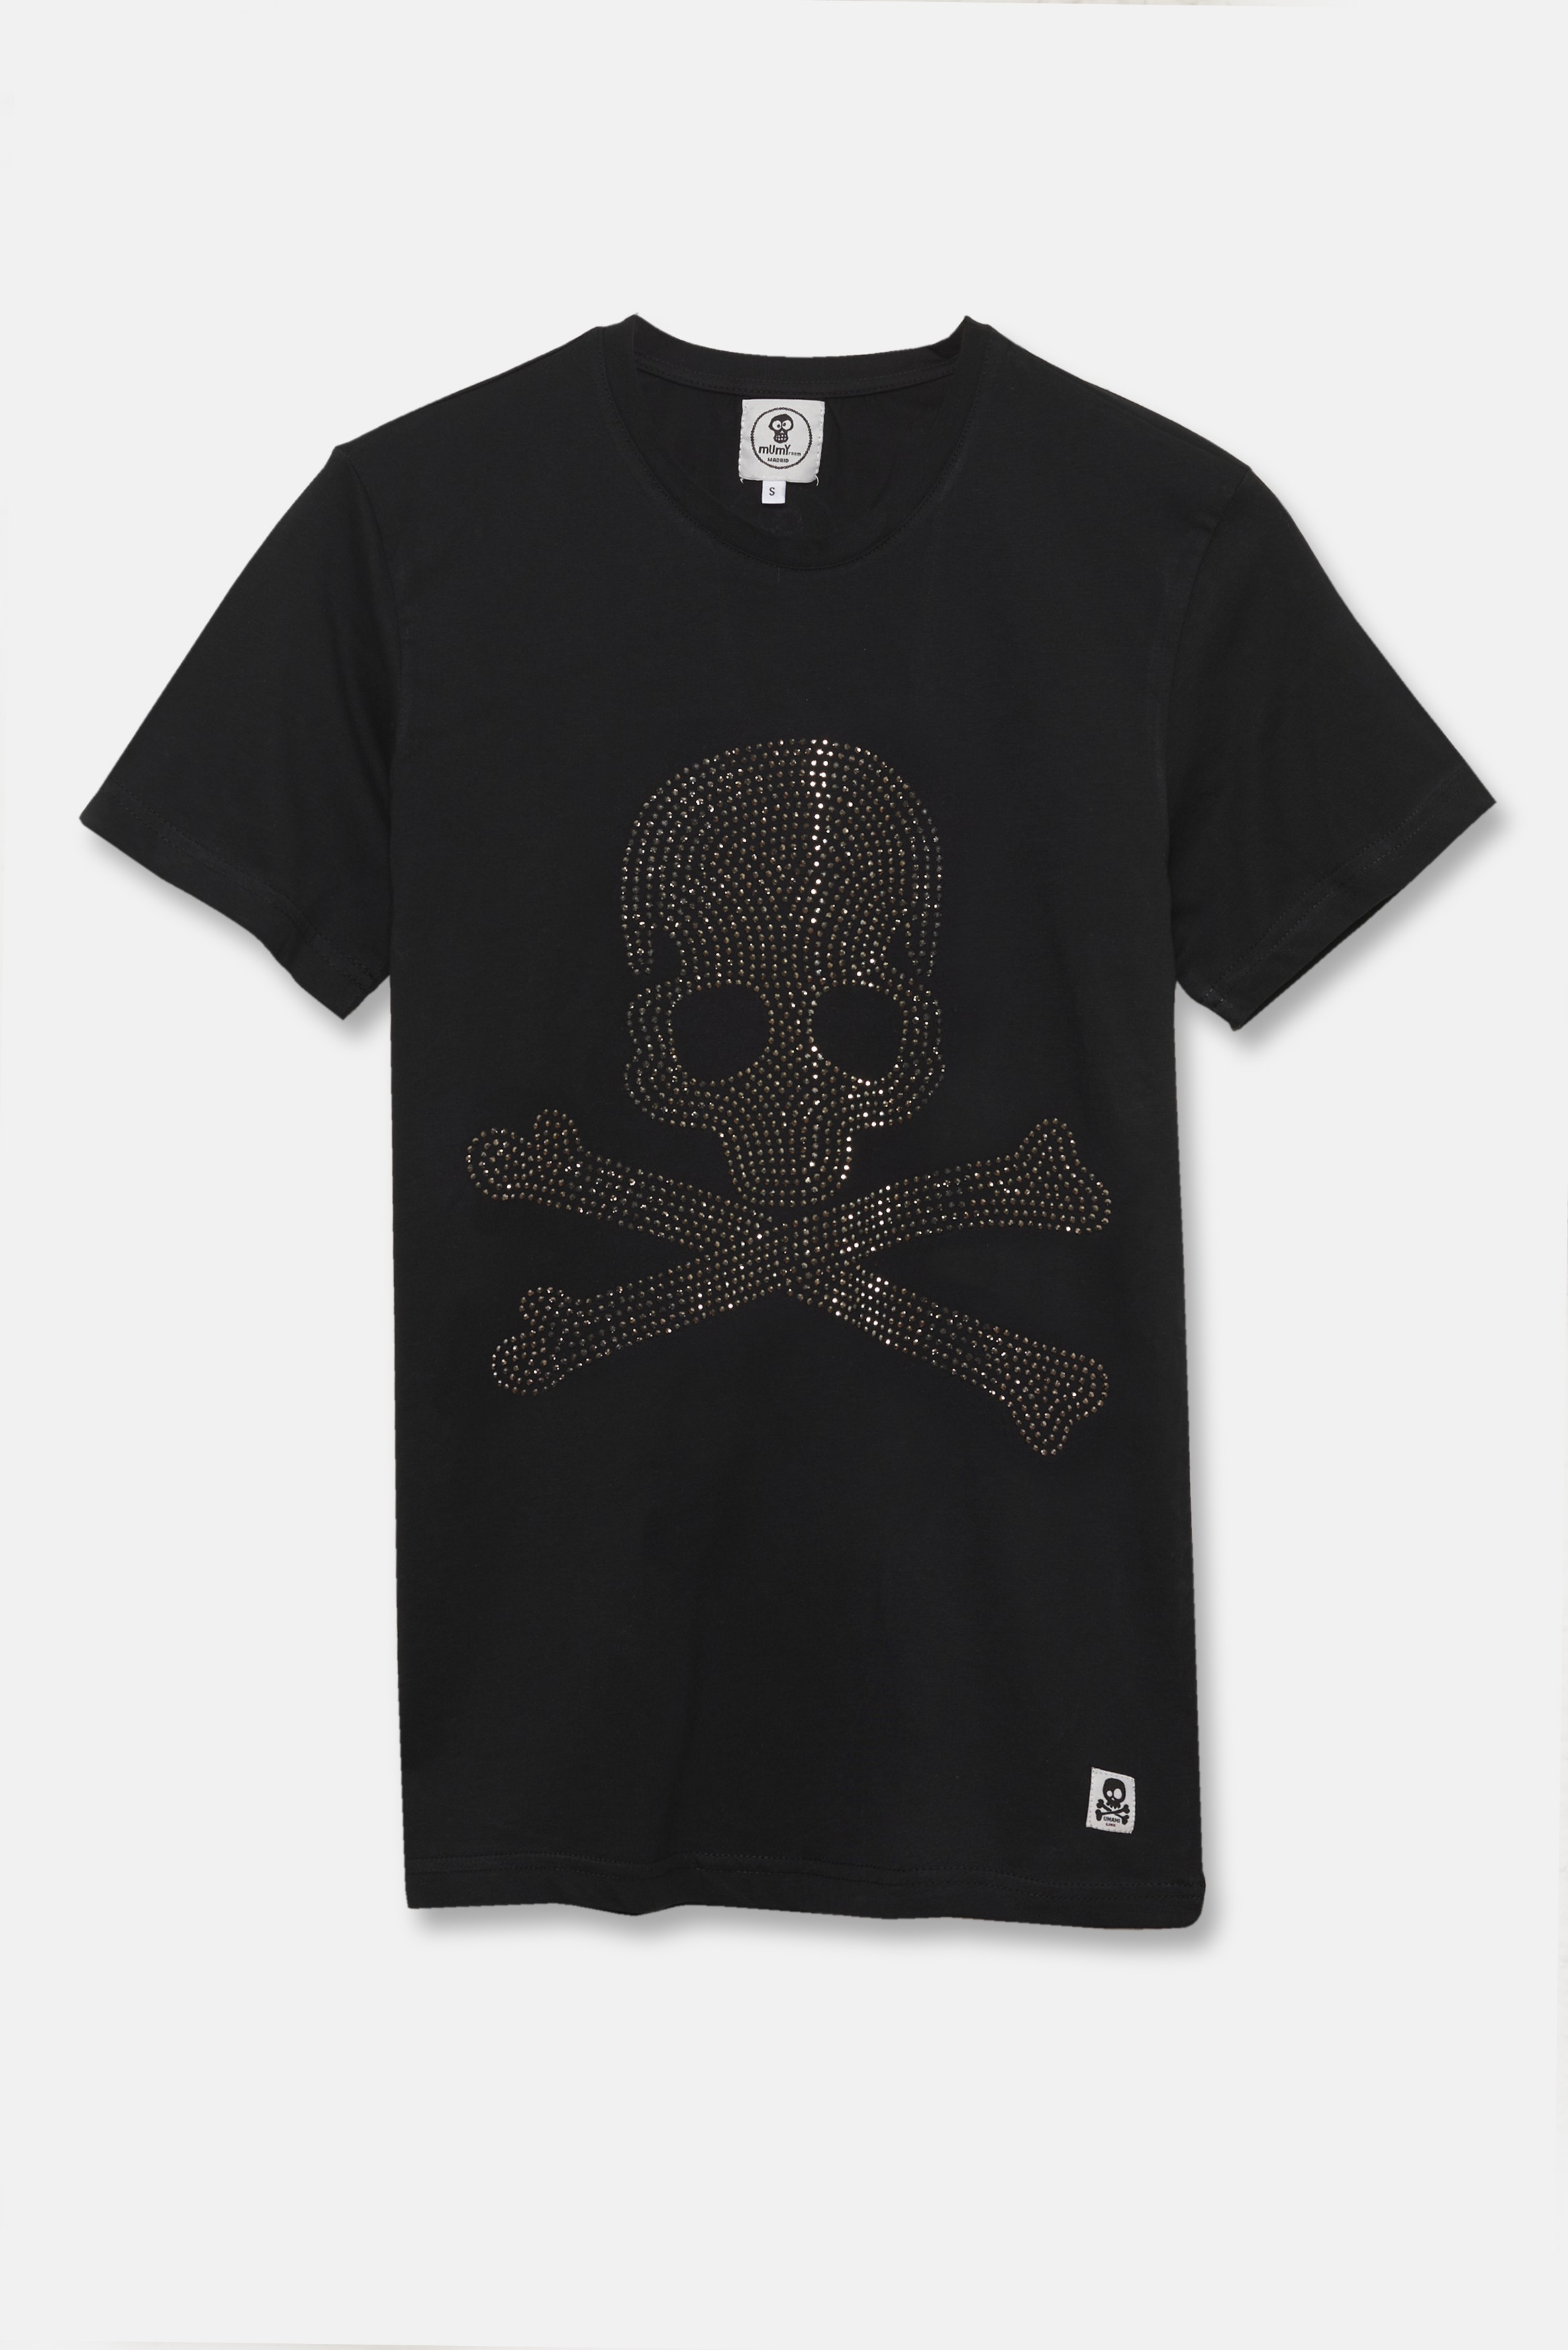 ADULT'S PRINTED SKULL DOTS IN BLACK